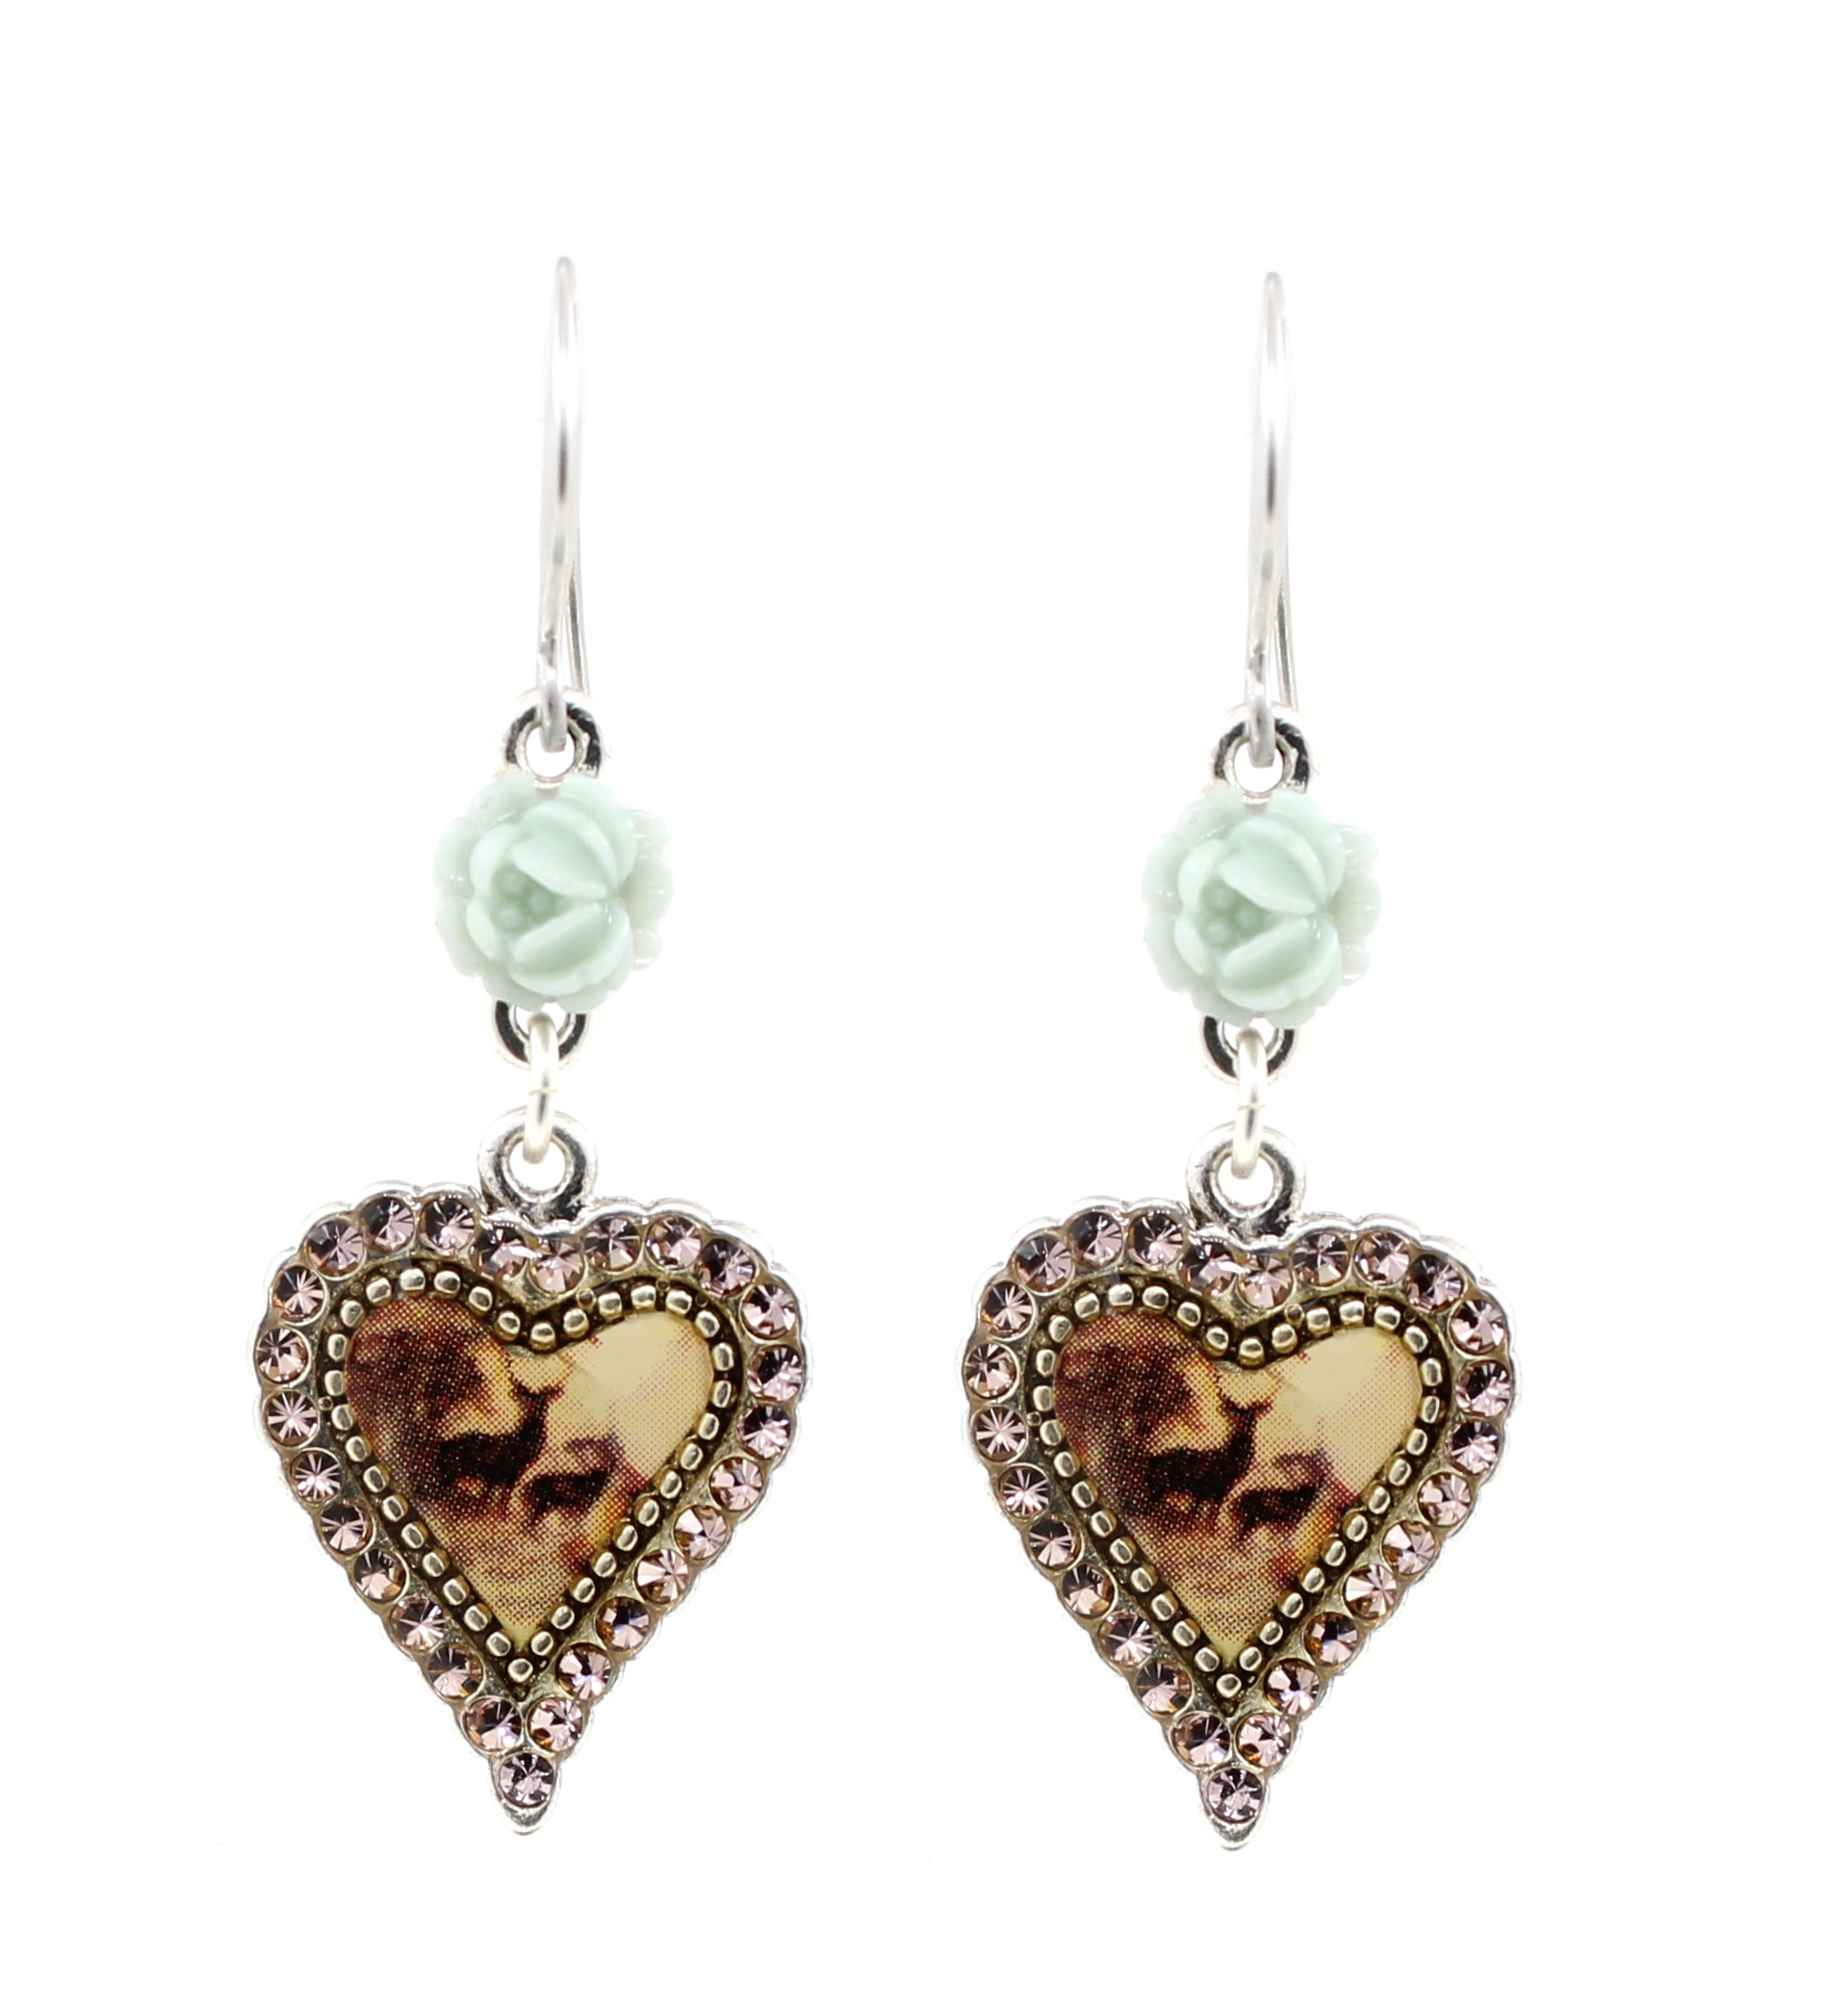 PILGRIM - Kitsch Devotion - Deer Heart Earrings - Silver/Green BNWT